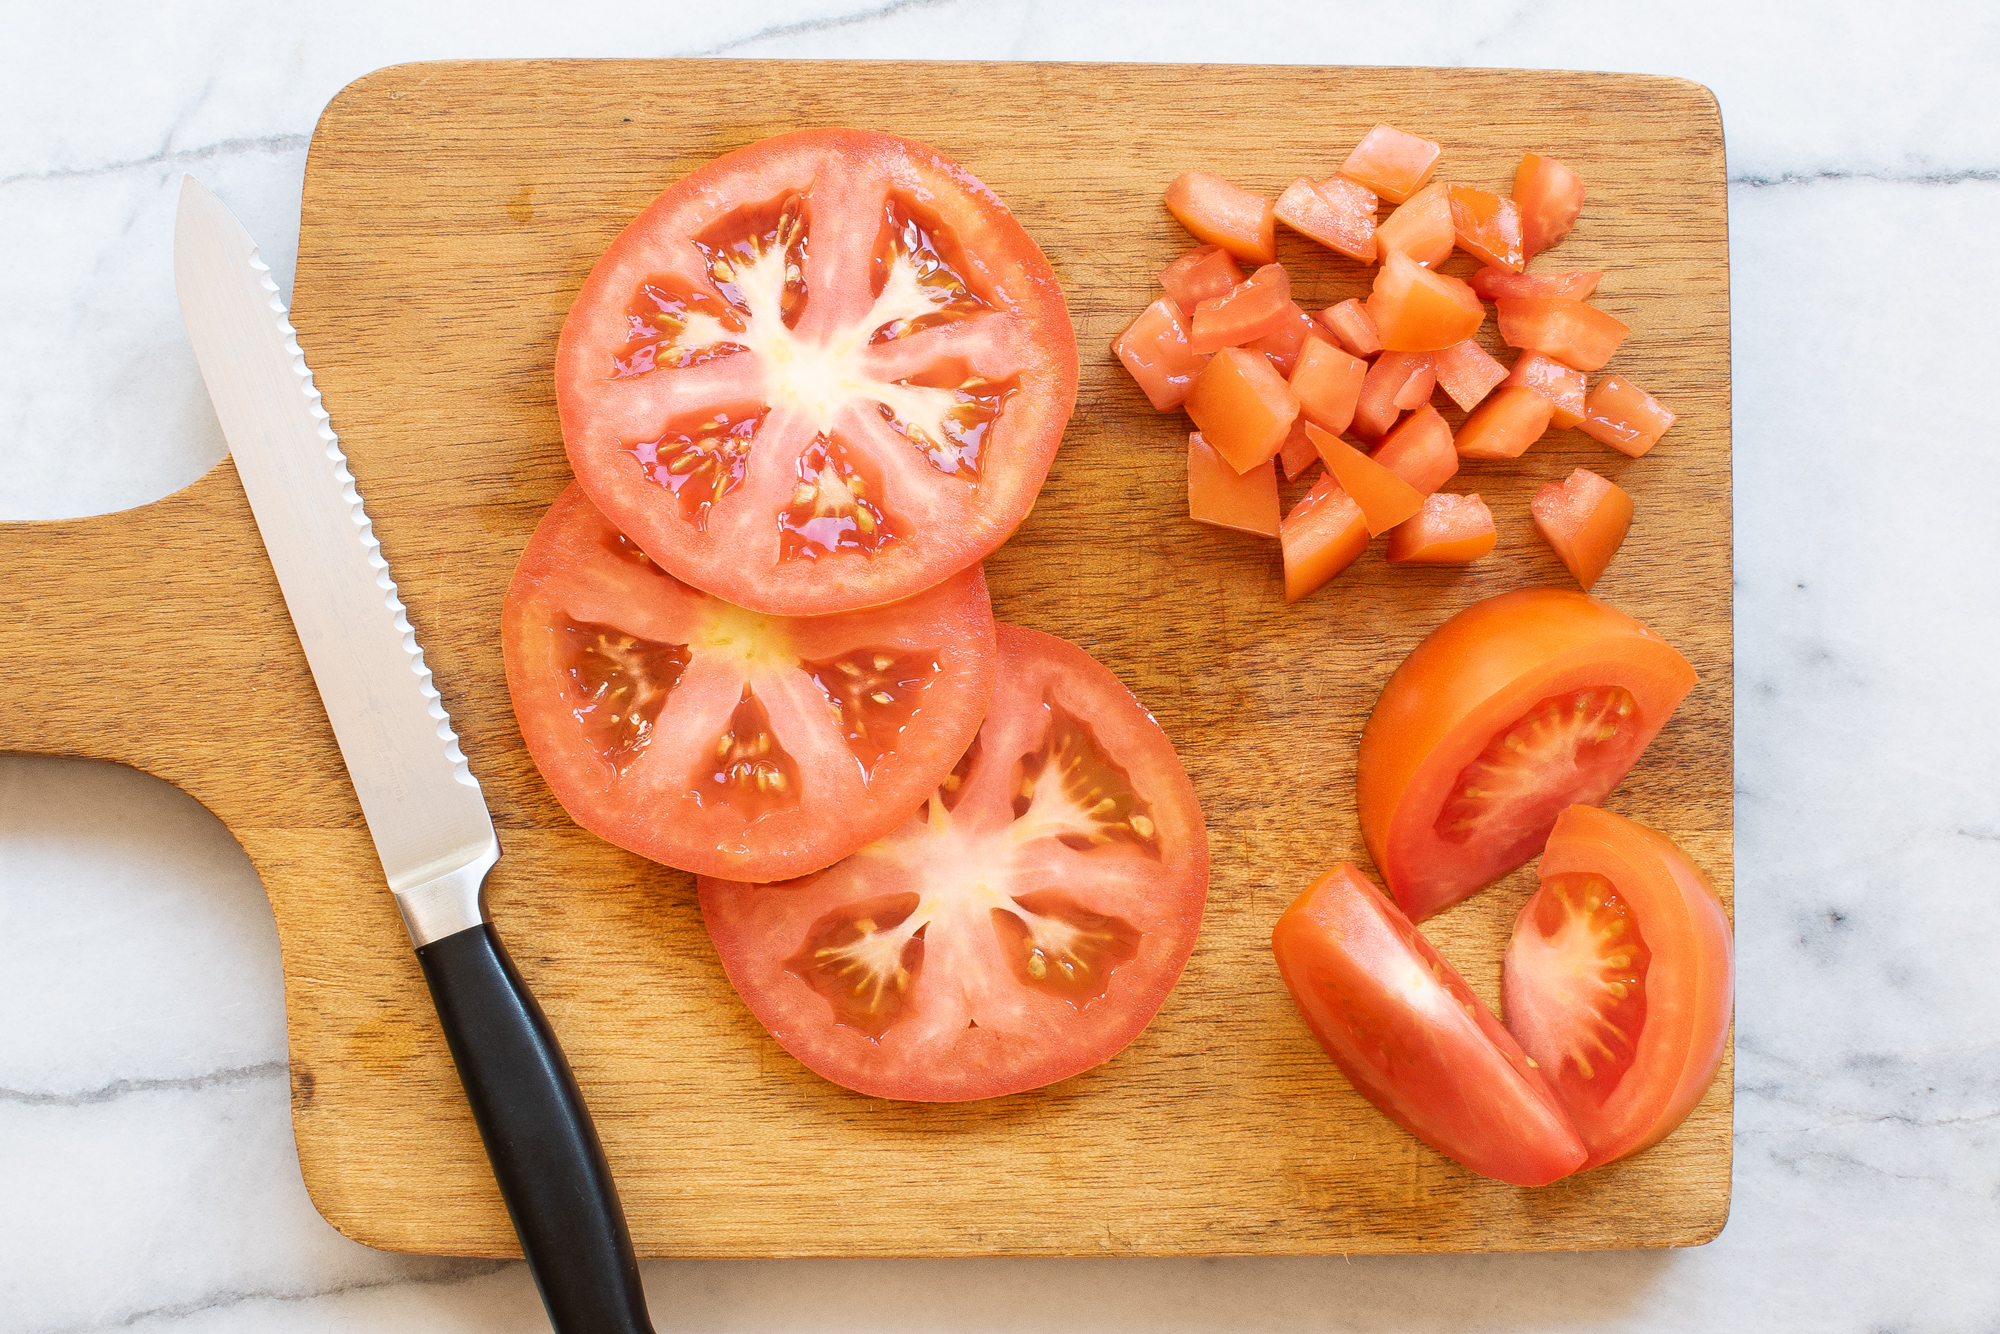 A cutting board with a knife and different cutting styles of tomatoes on it